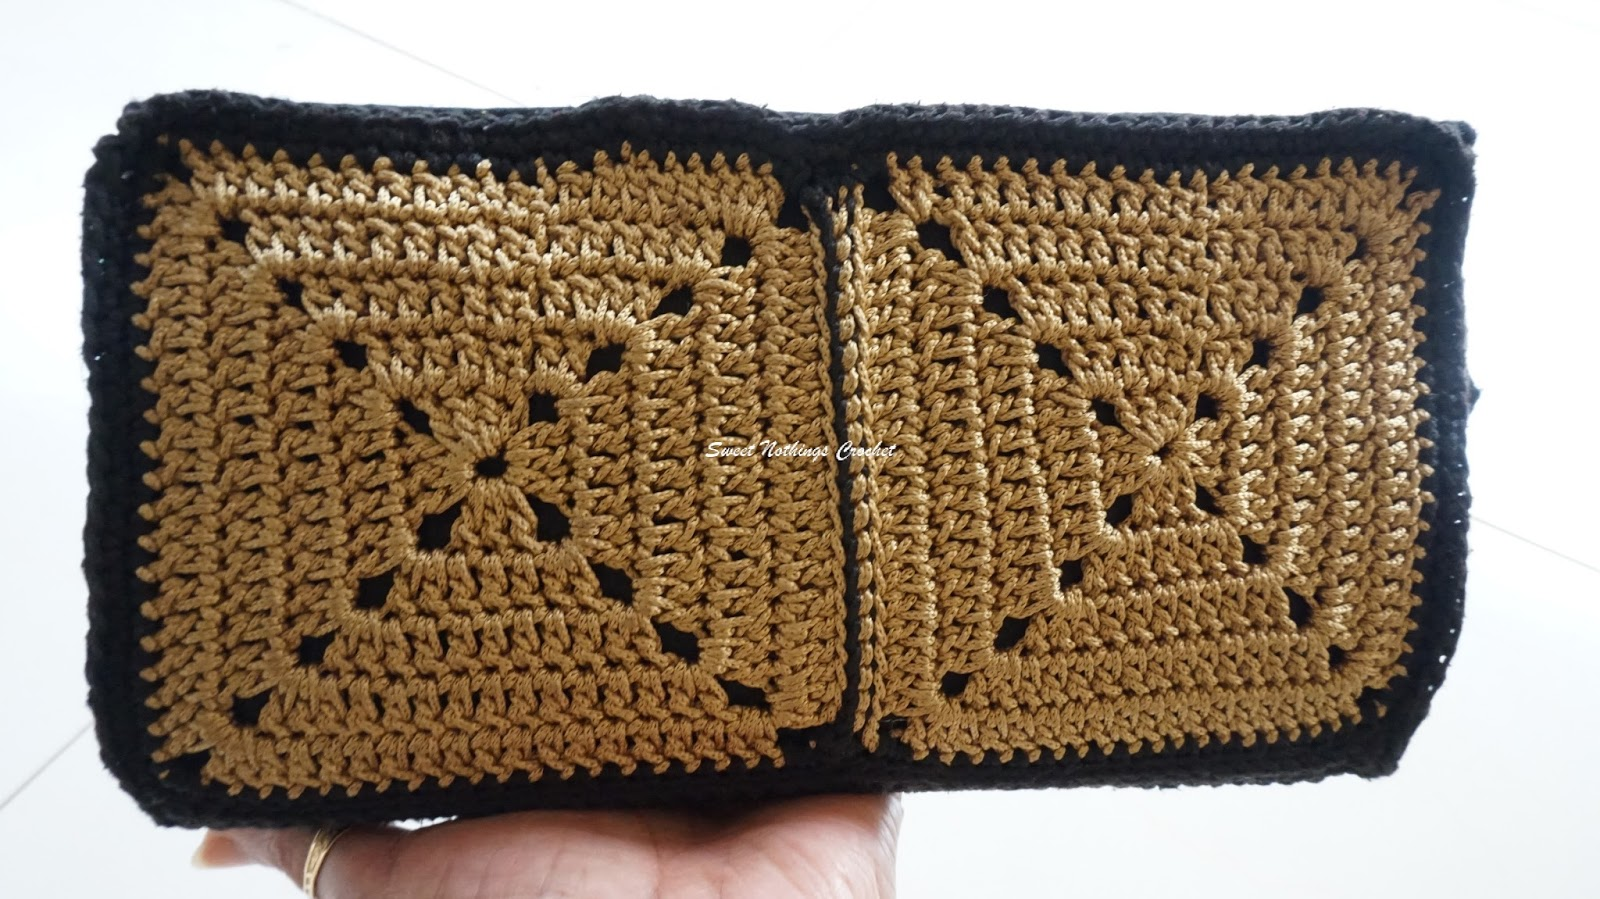 Sweet Nothings Crochet: GRANNY SQUARE WALLET